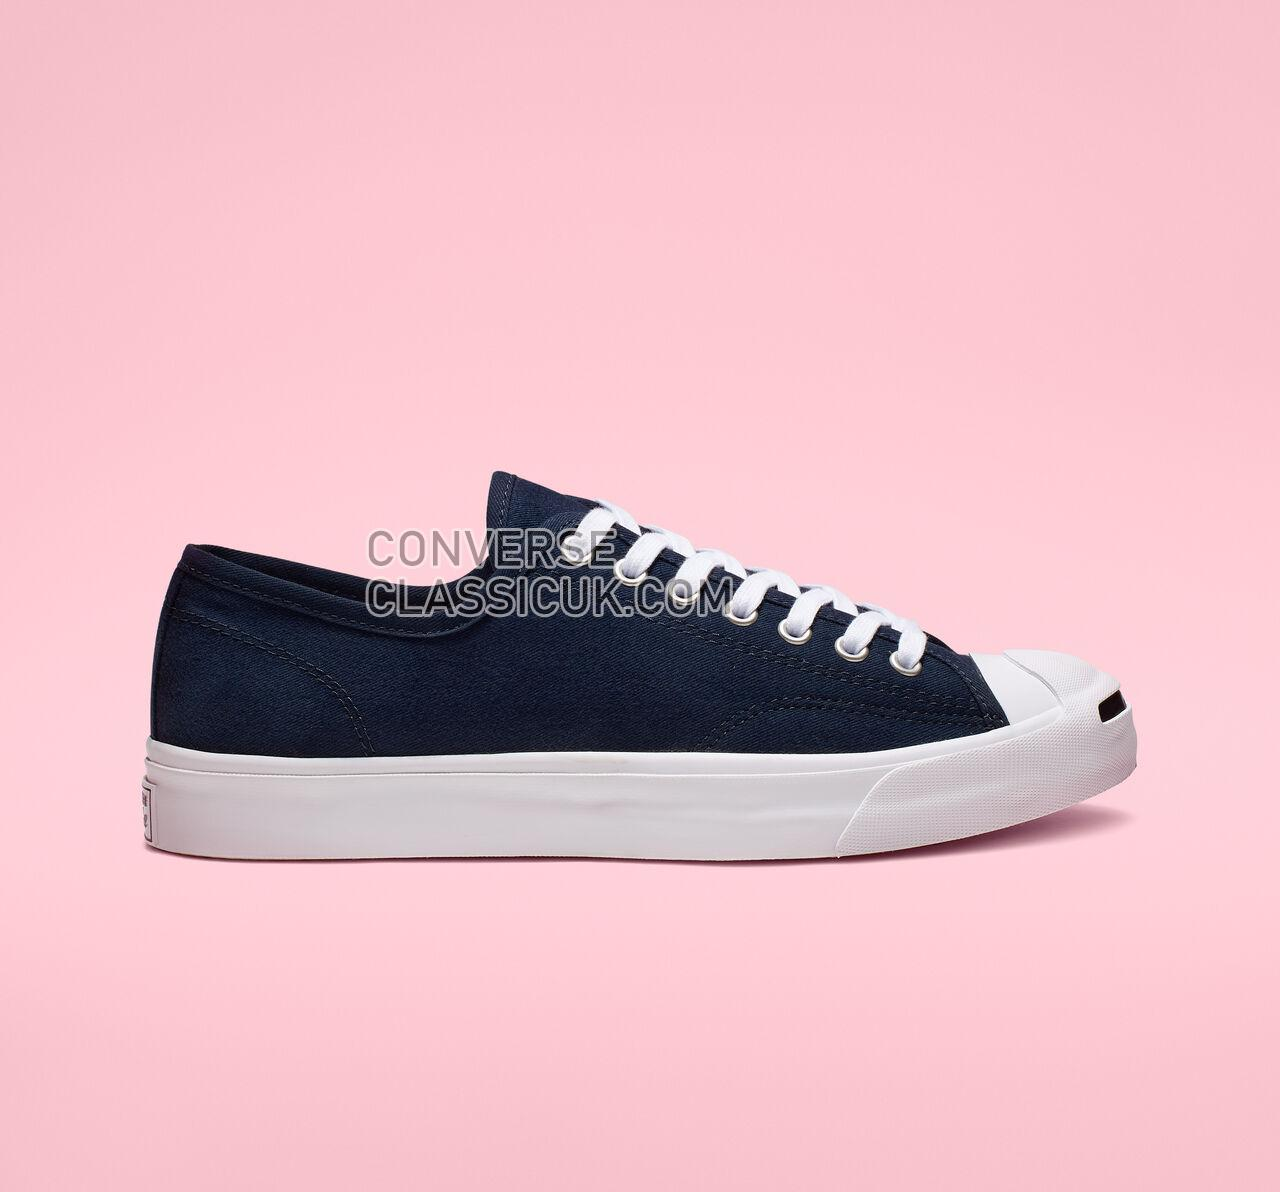 Converse Jack Purcell Low Top Mens Womens Unisex 165009C Obsidian/White/Black Shoes